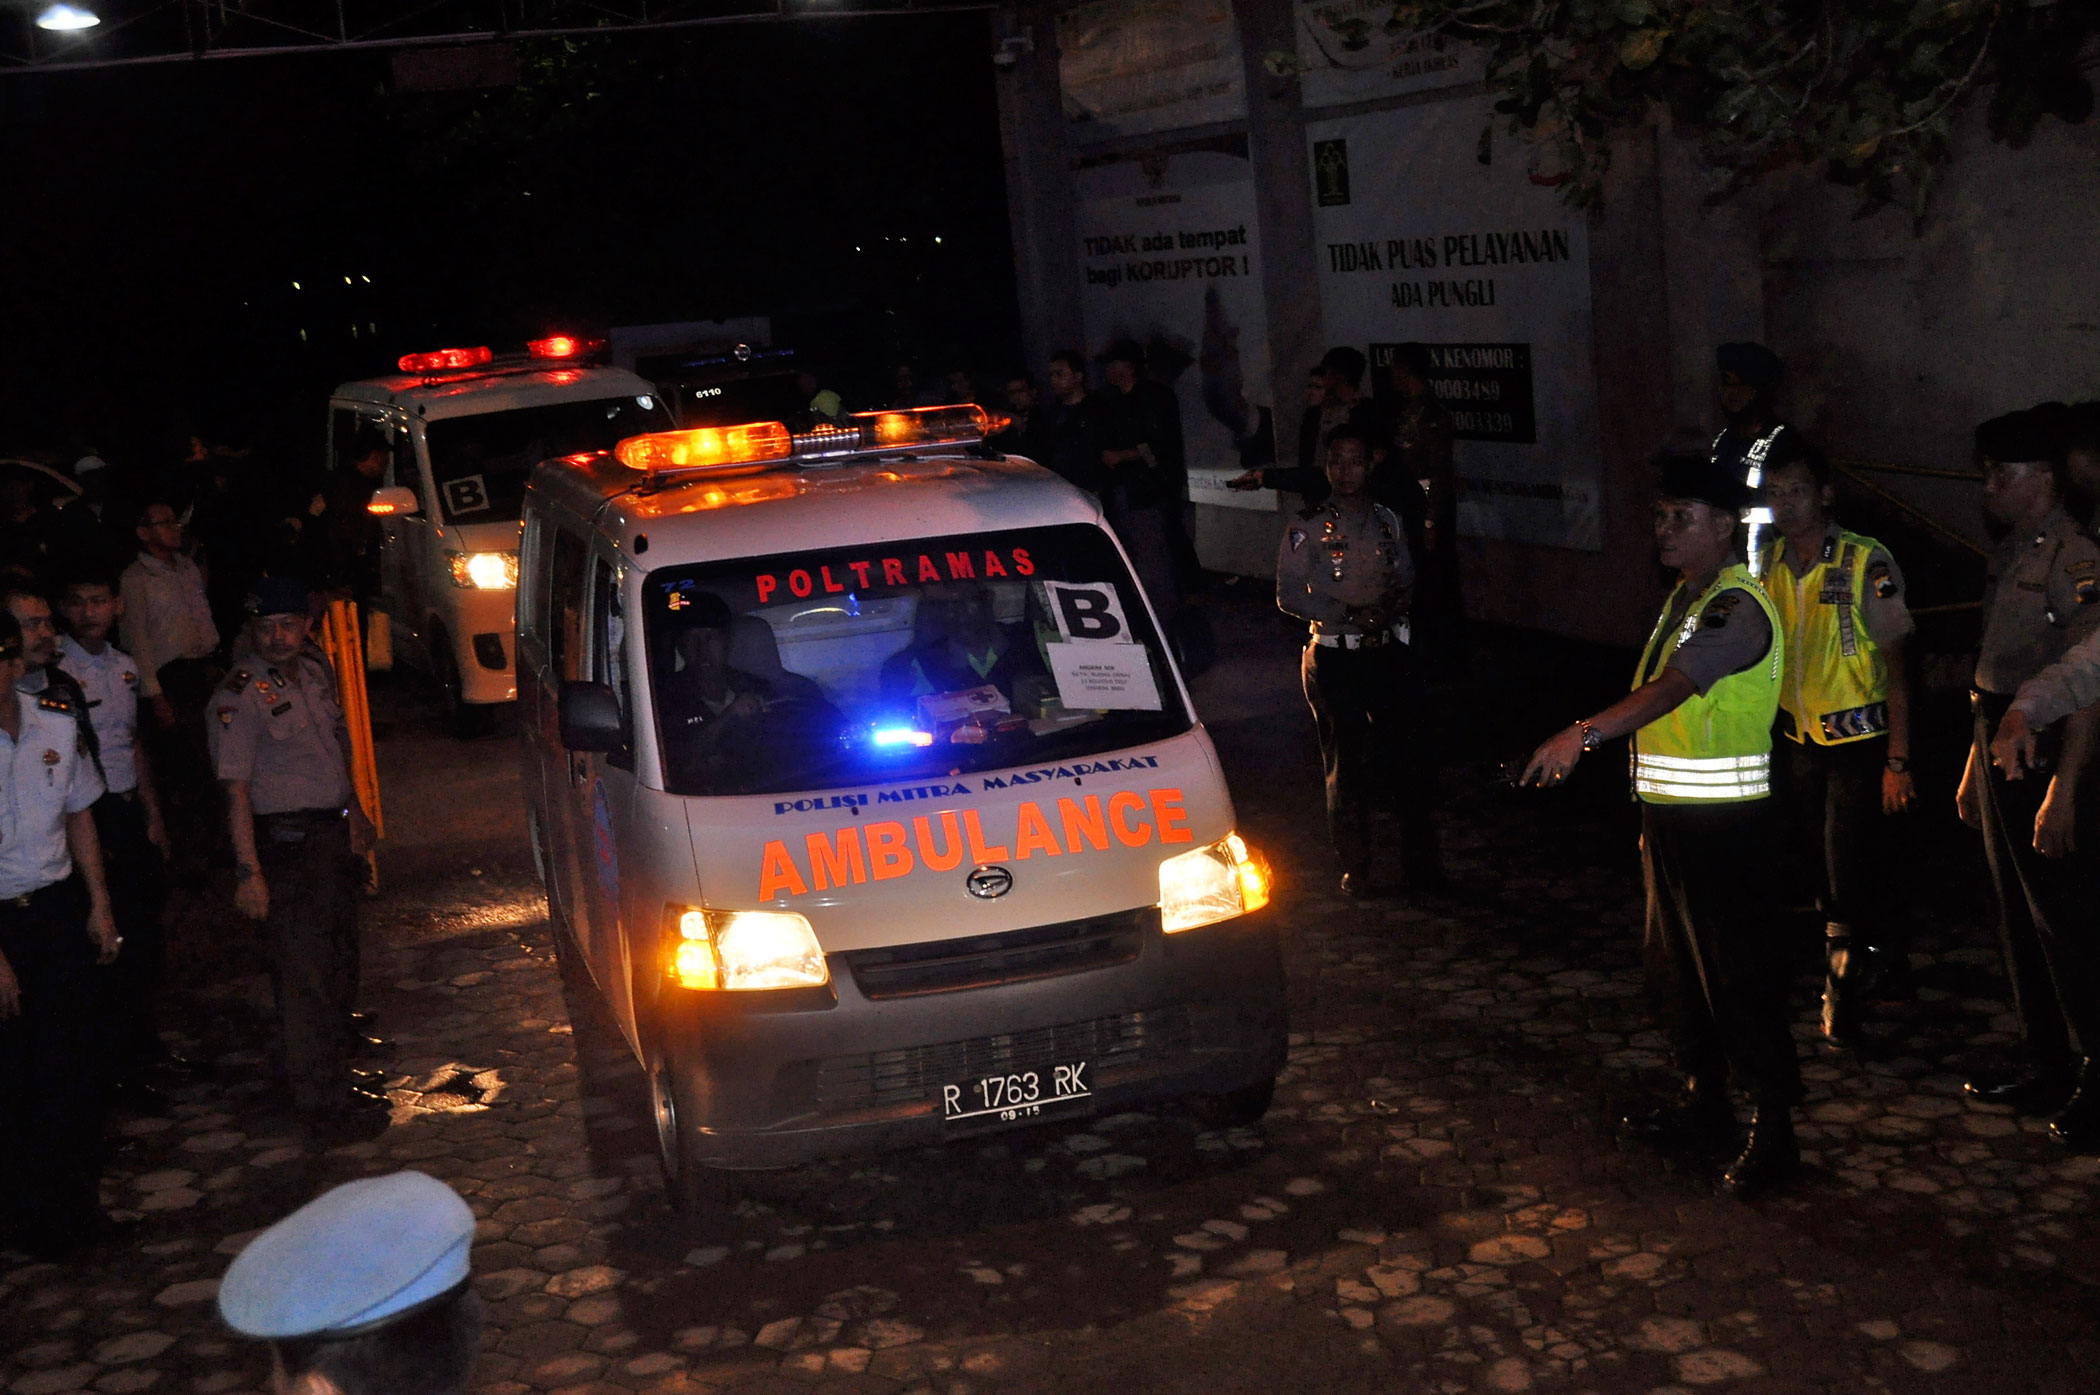 Ambulances carrying the bodies of drug convicts arrive at Wijayapura port in Cilacap, Indonesia, Jan. 18, 2015.